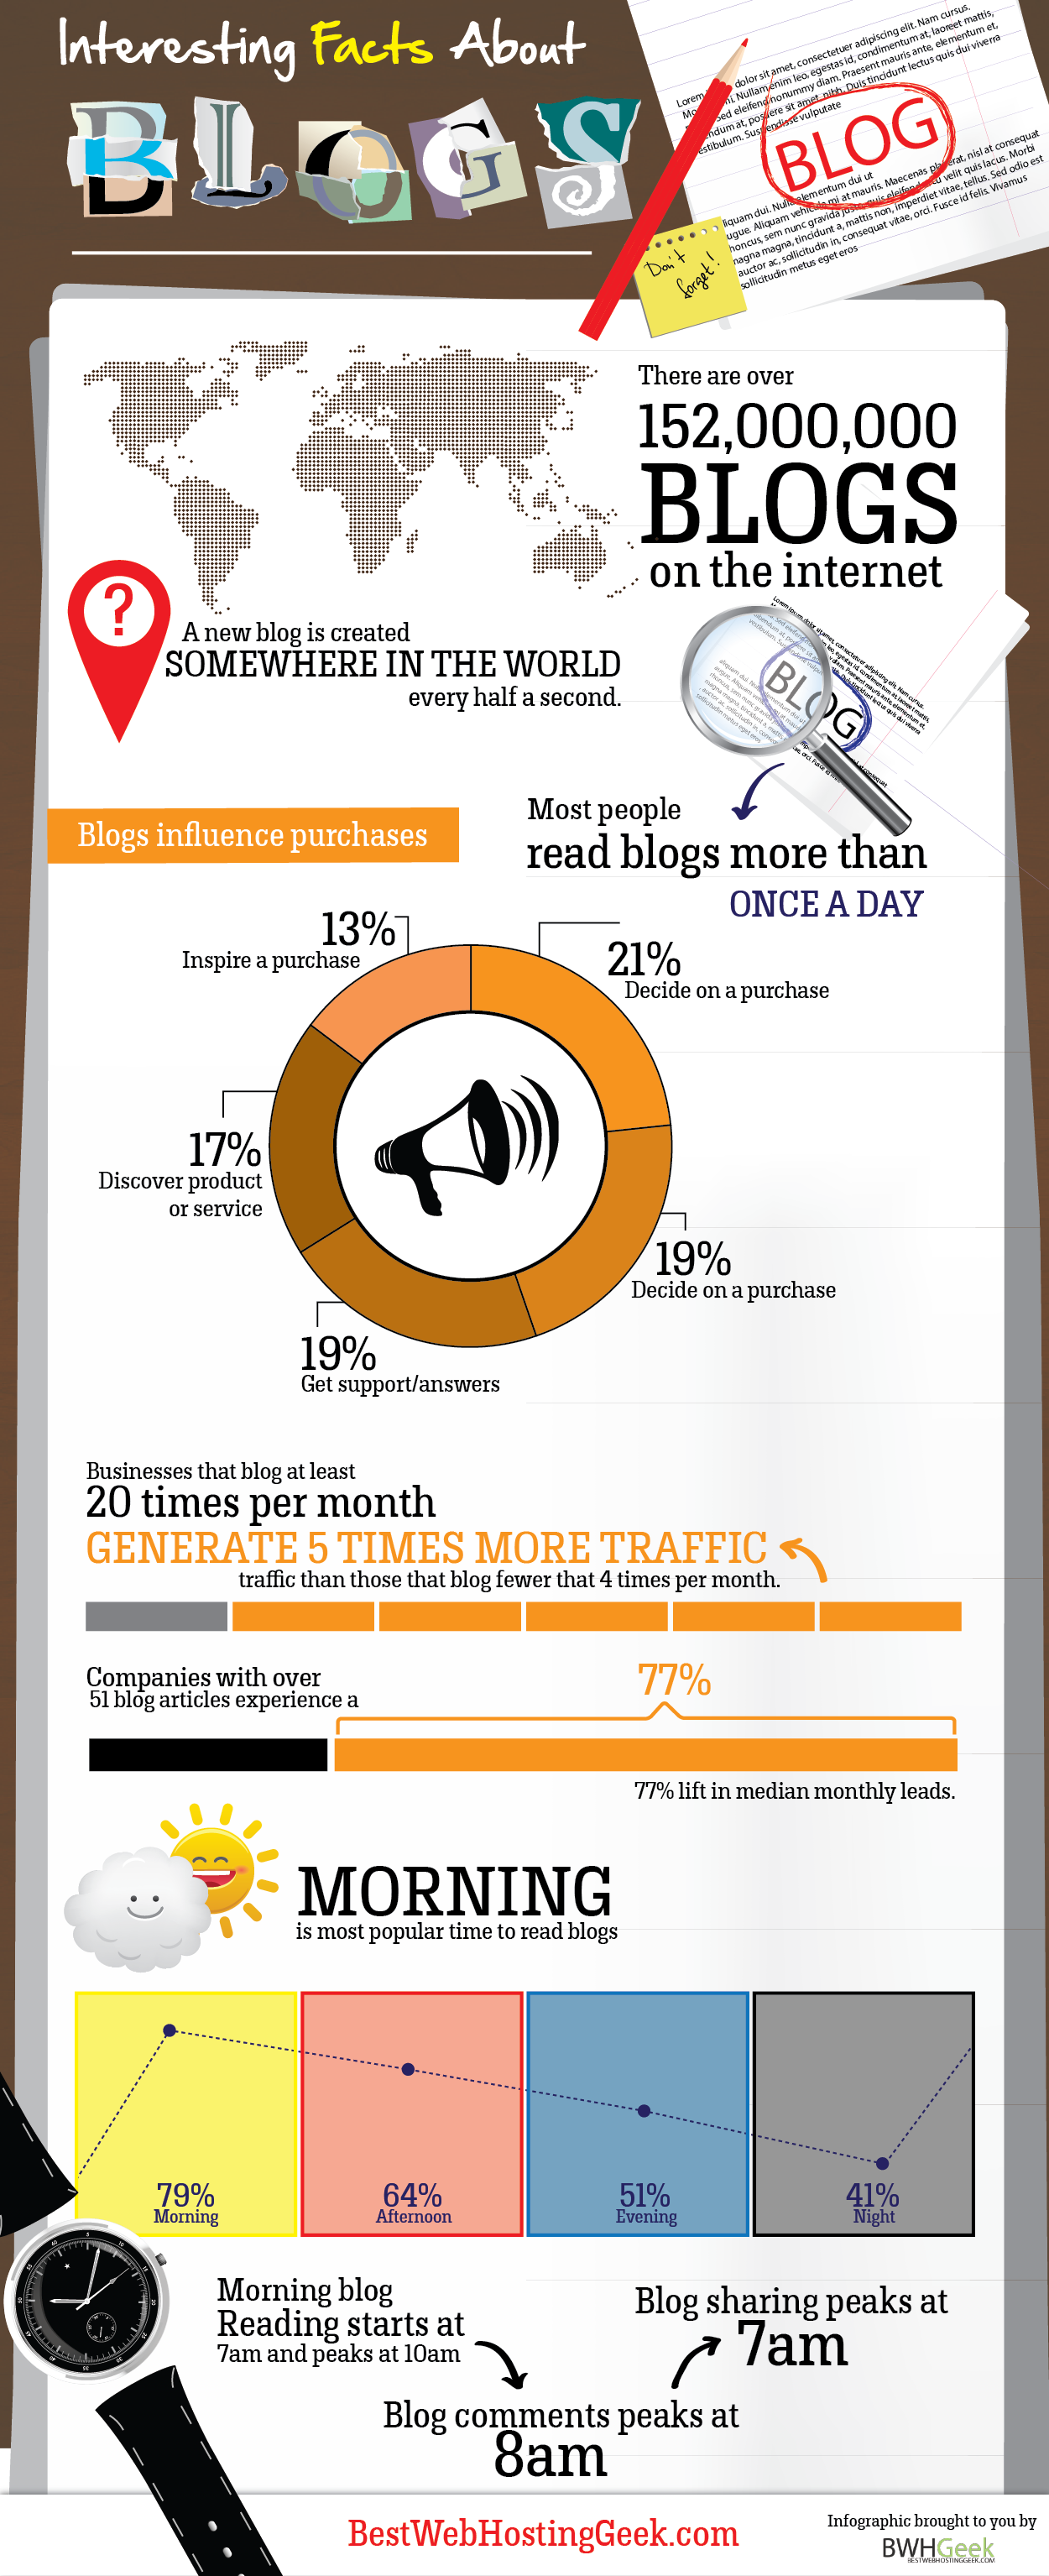 Interesting statistics about Blogging